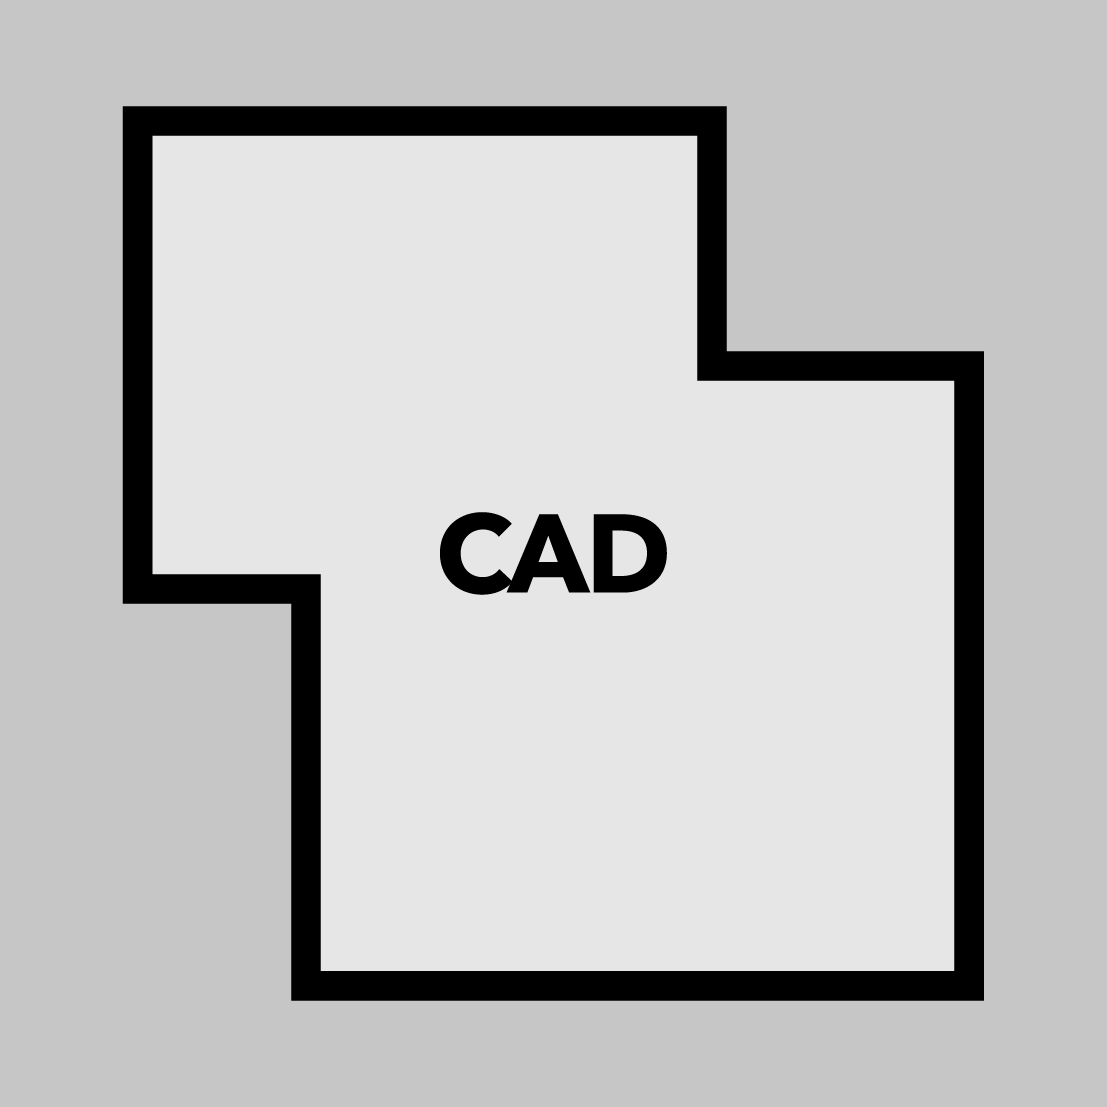 cad-icon-02.png